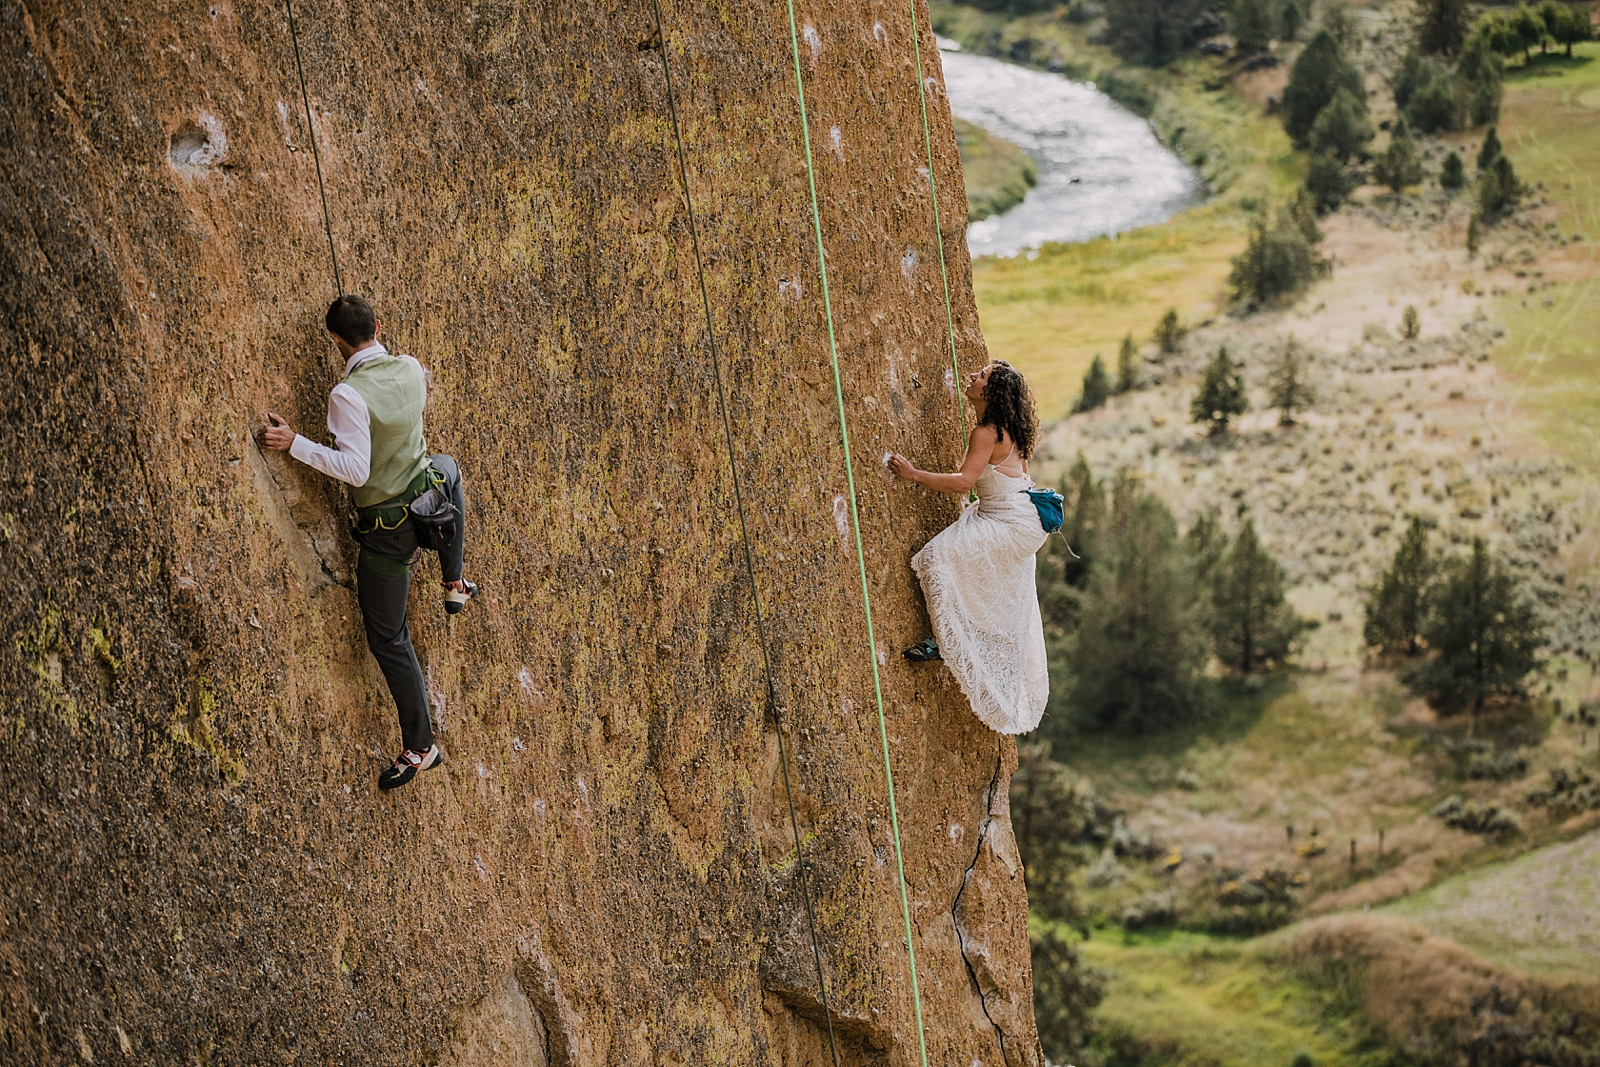 bride and groom climbing in smith rock state park, smith rock state park rock climbing, rock climbing elopement, screaming yellow zonkers, moons of pluto, smith rock elopement